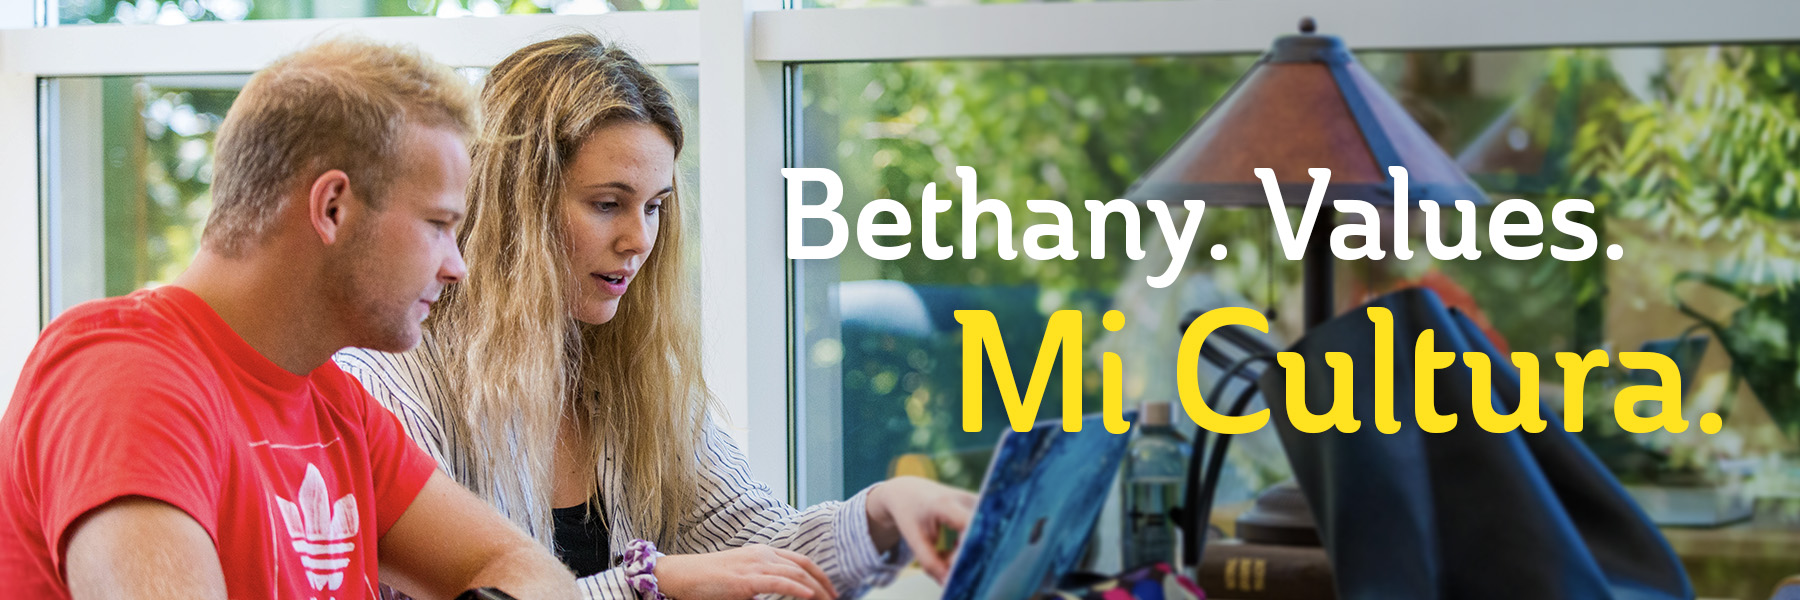 Bethany. Values. Mi Cultura